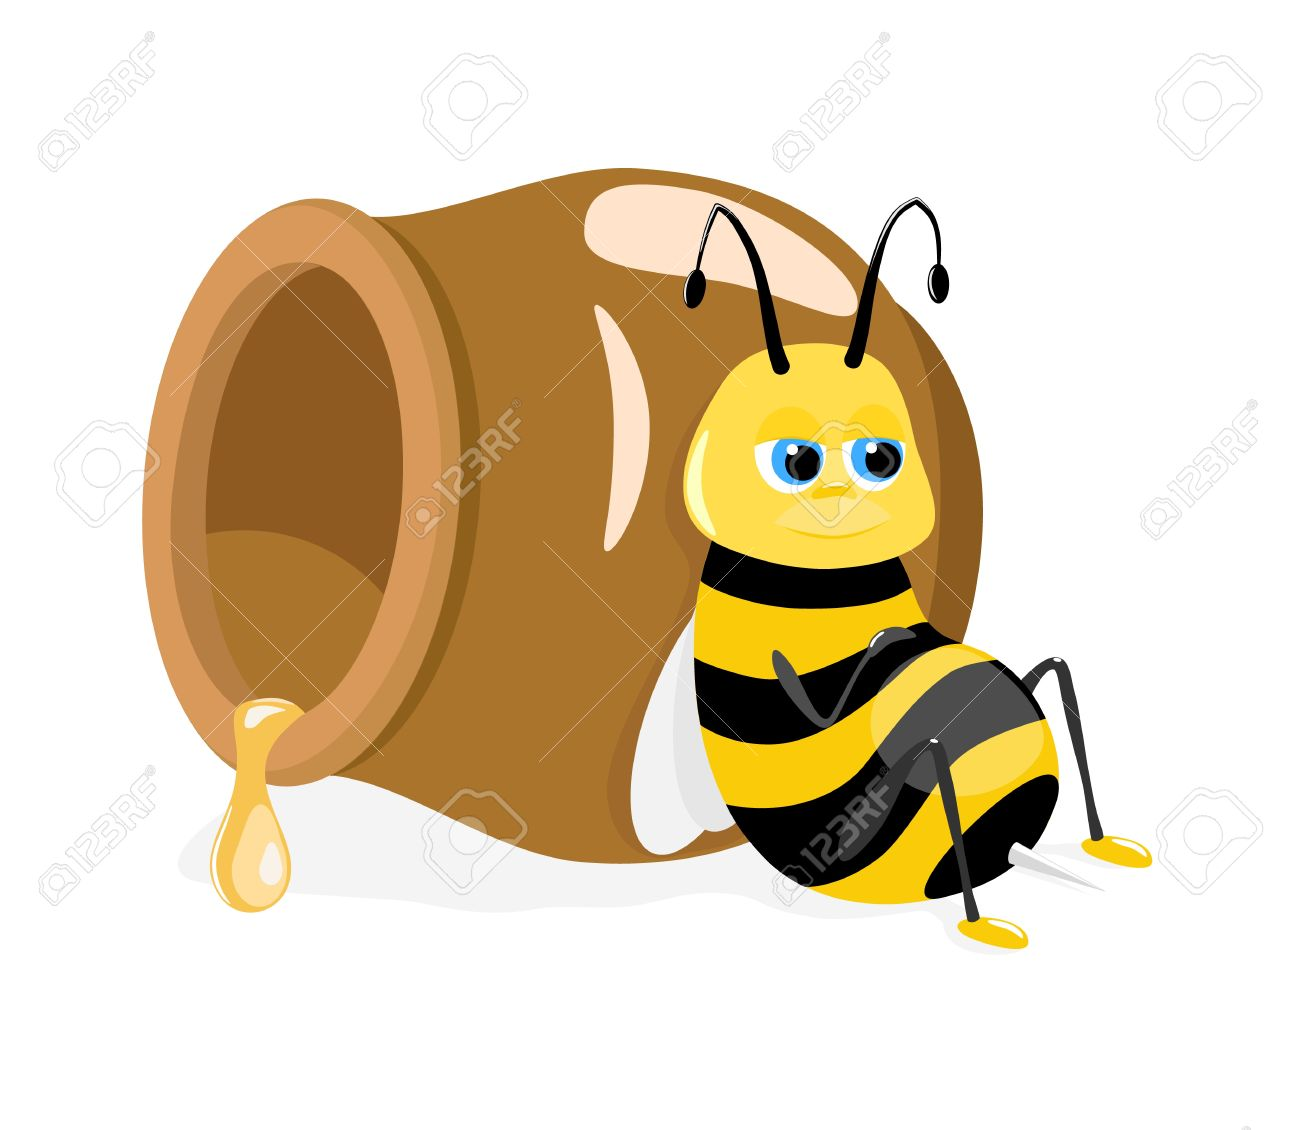 1300x1130 Vector Illustration Of Cartoon Bee Sitting About Honey Pot